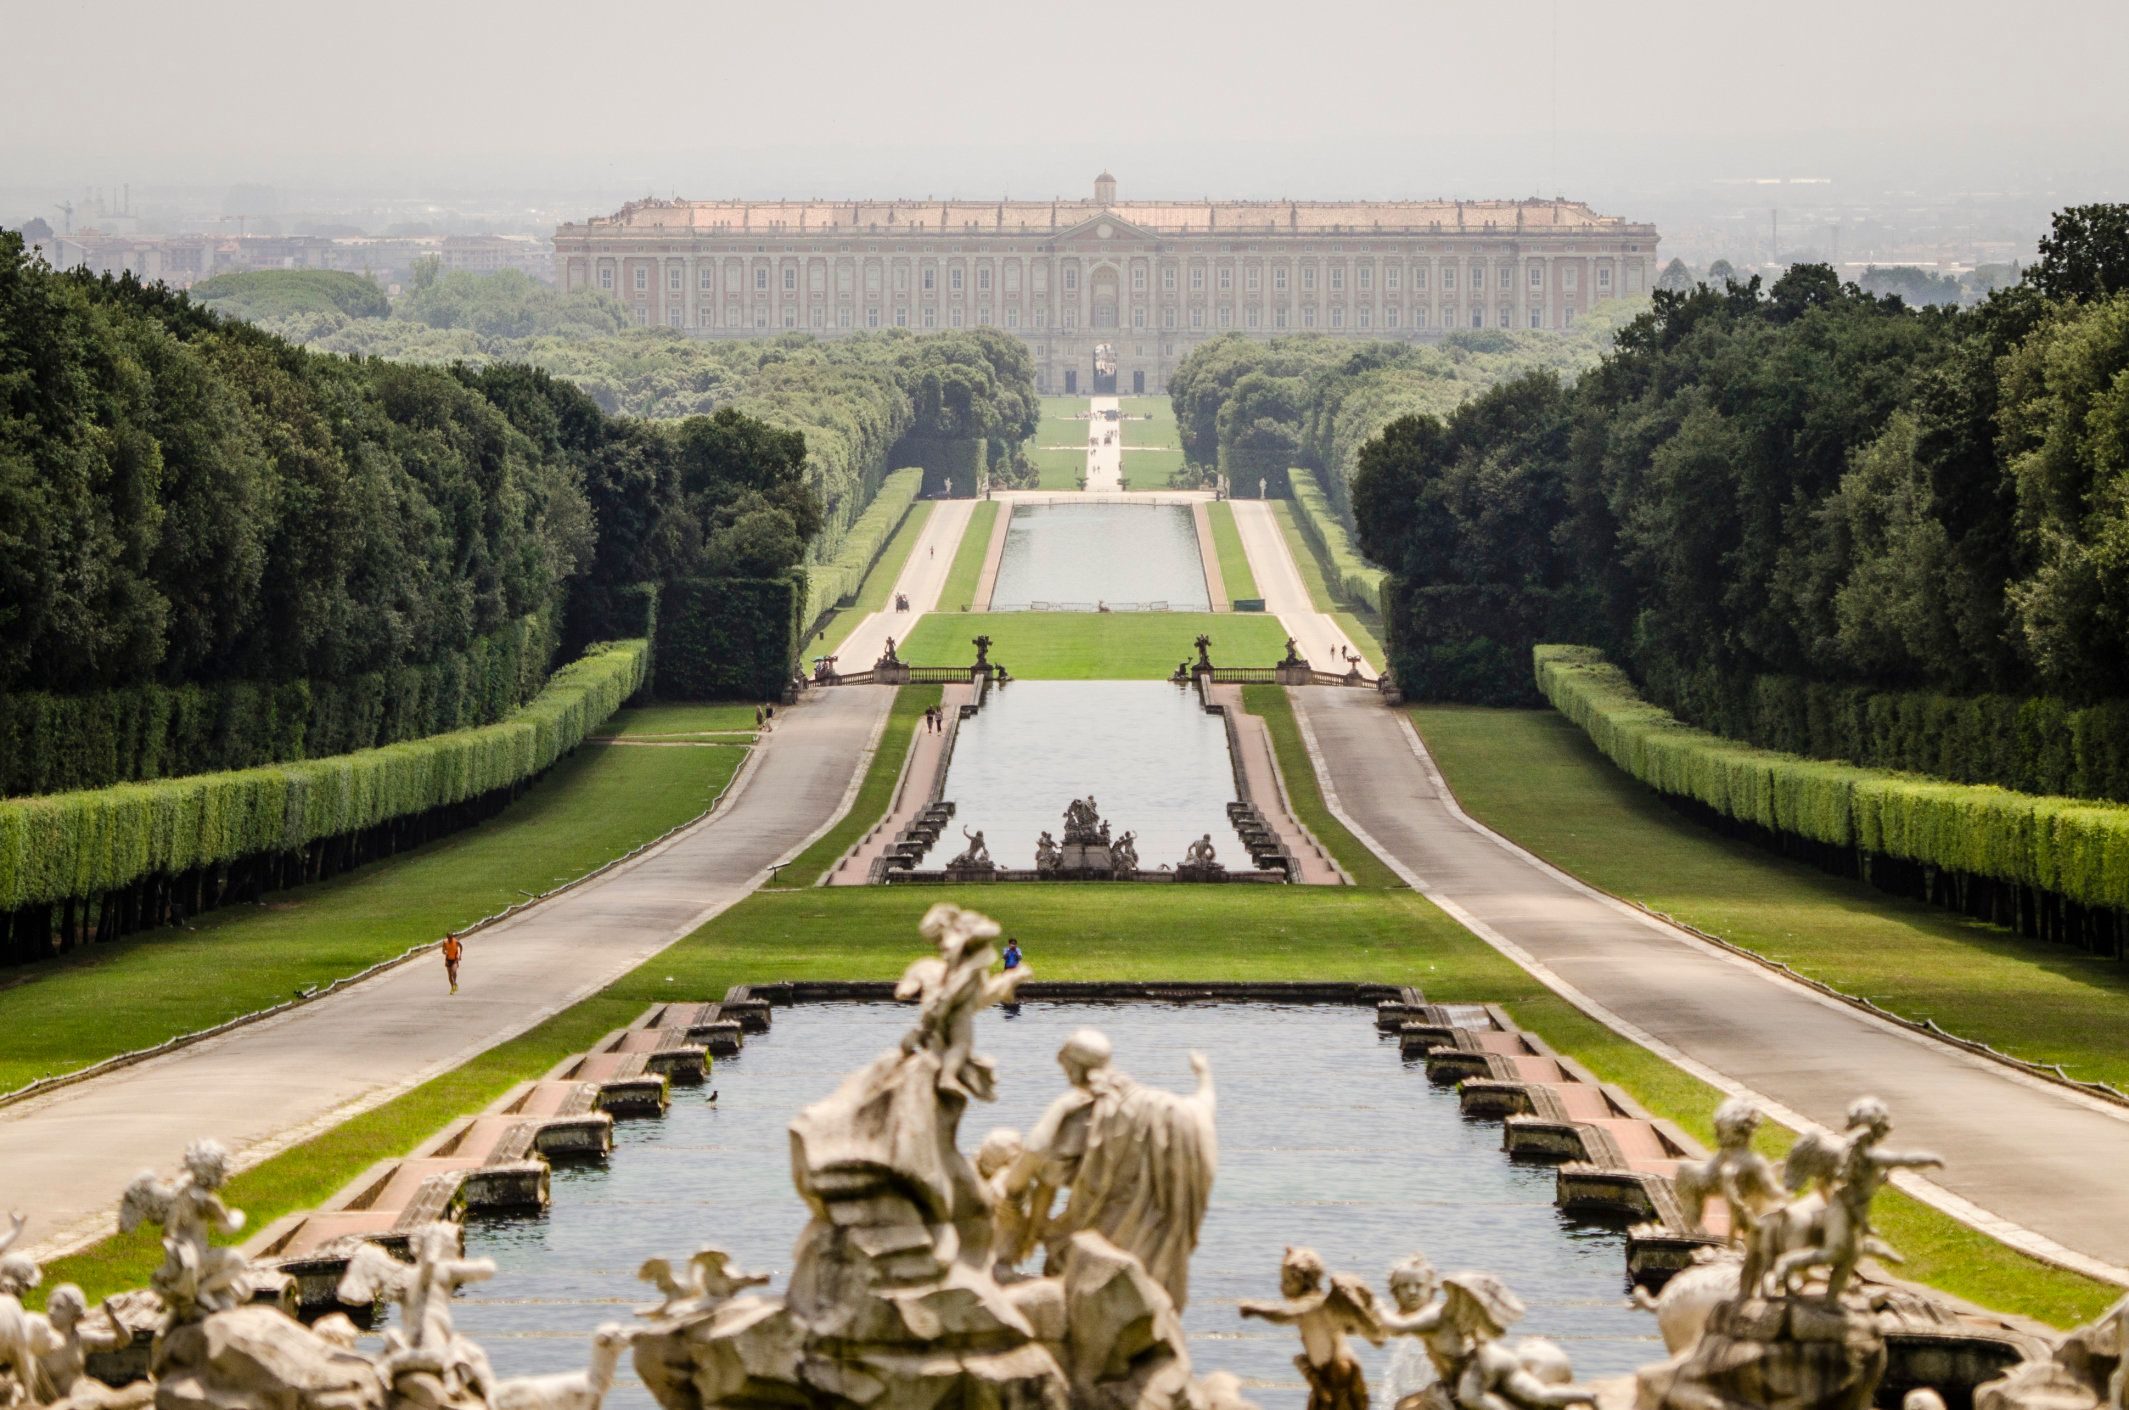 Mauro Felicori was appointed to revive the fortunes of the spectacular 1,200-room Baroque palace of the Bourbon kings just fi